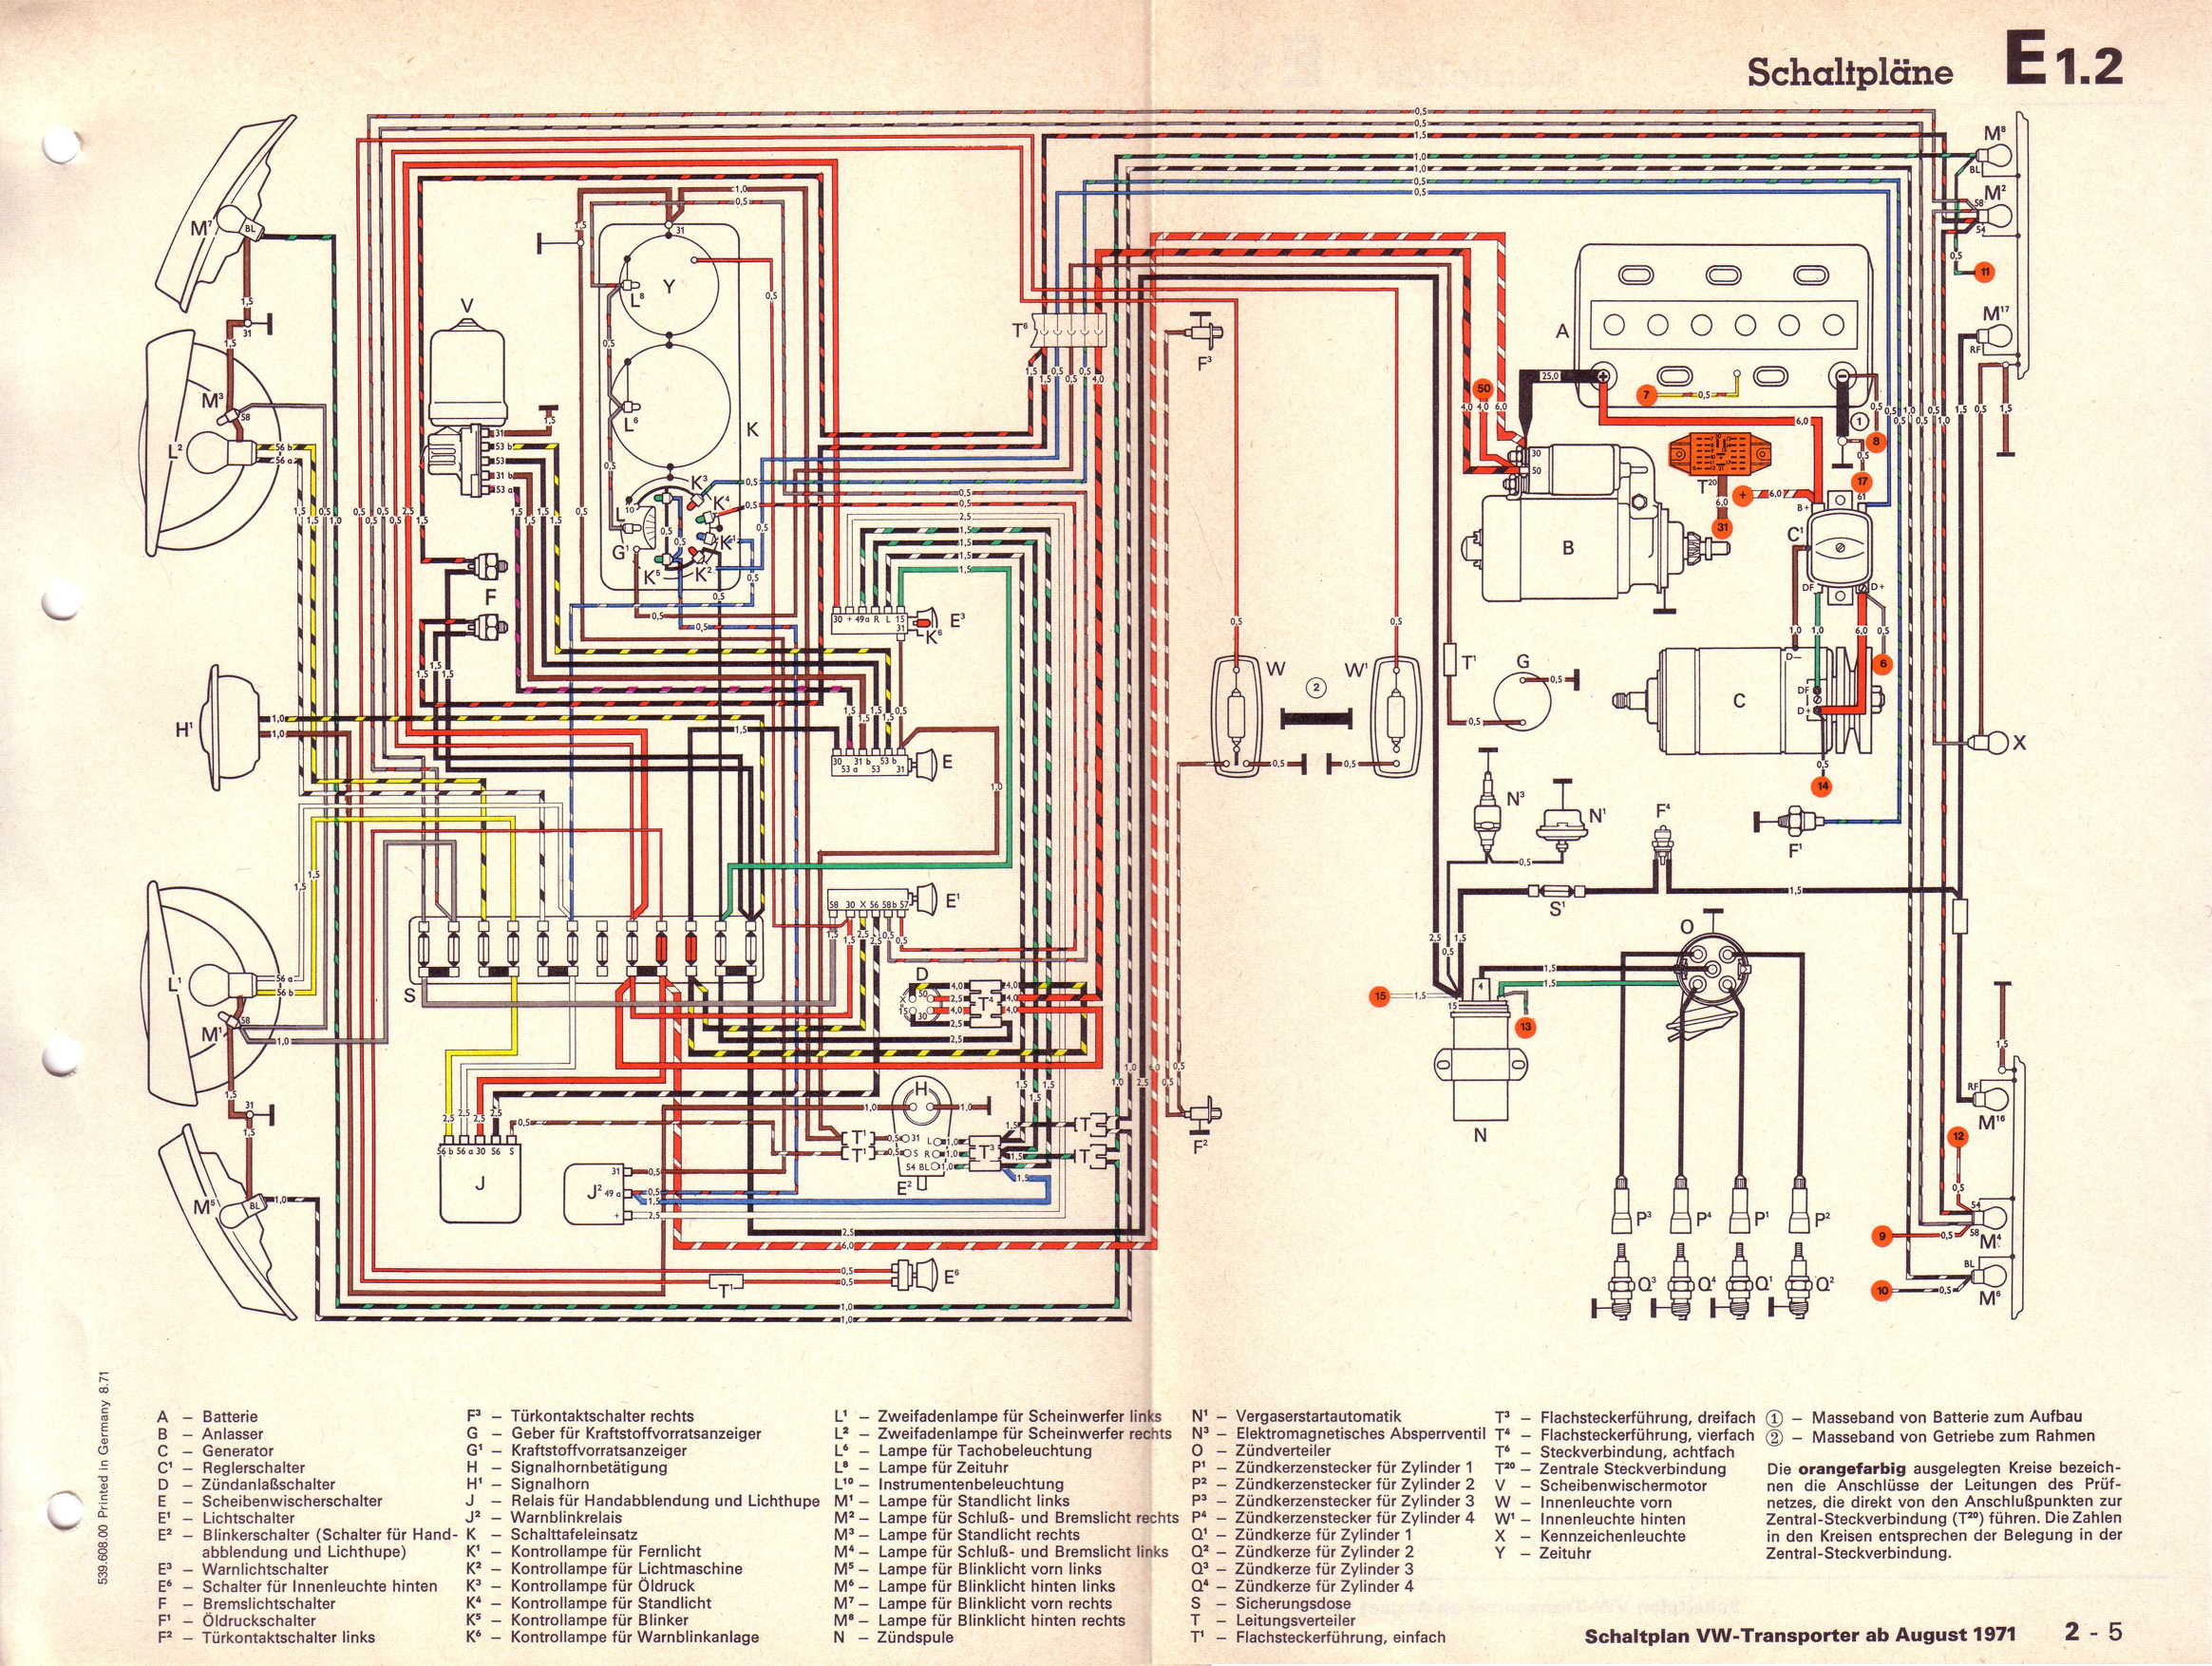 Amazing 1965 vw wiring diagram photos electrical wiring diagram 77 vw van wiring diagram wiring diagram asfbconference2016 Gallery